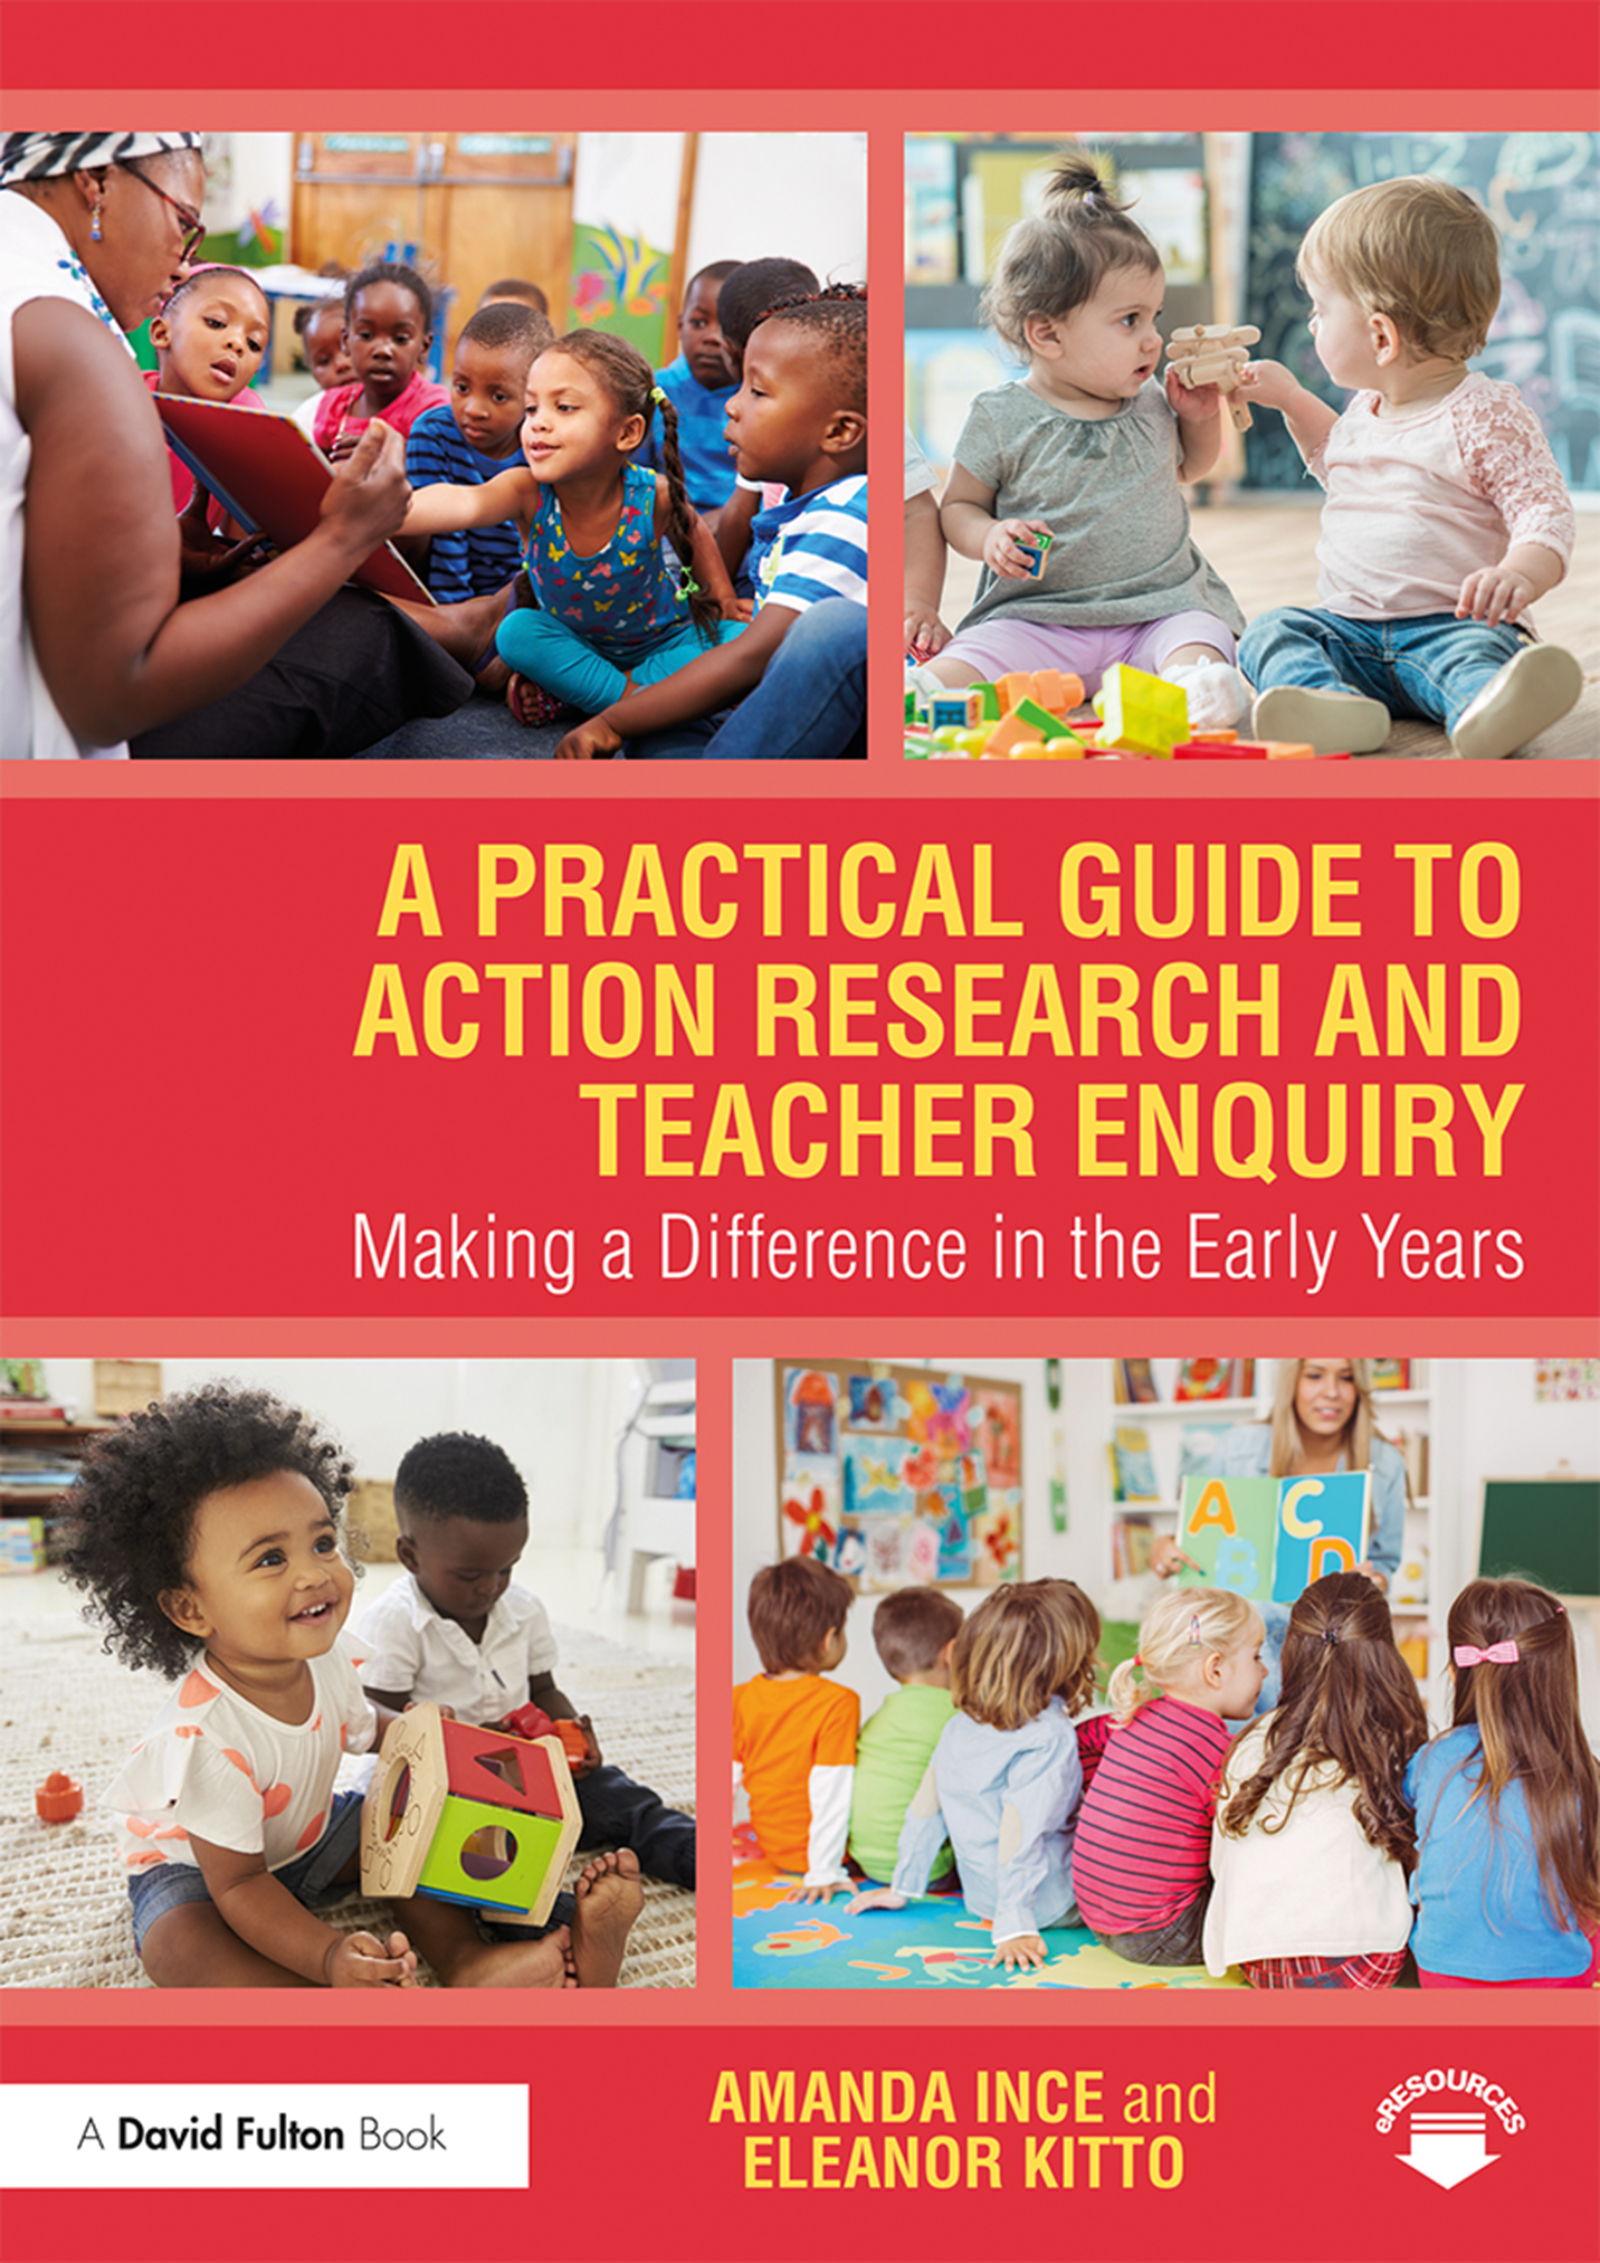 A Practical Guide to Action Research and Teacher Enquiry: Making a Difference in the Early Years book cover